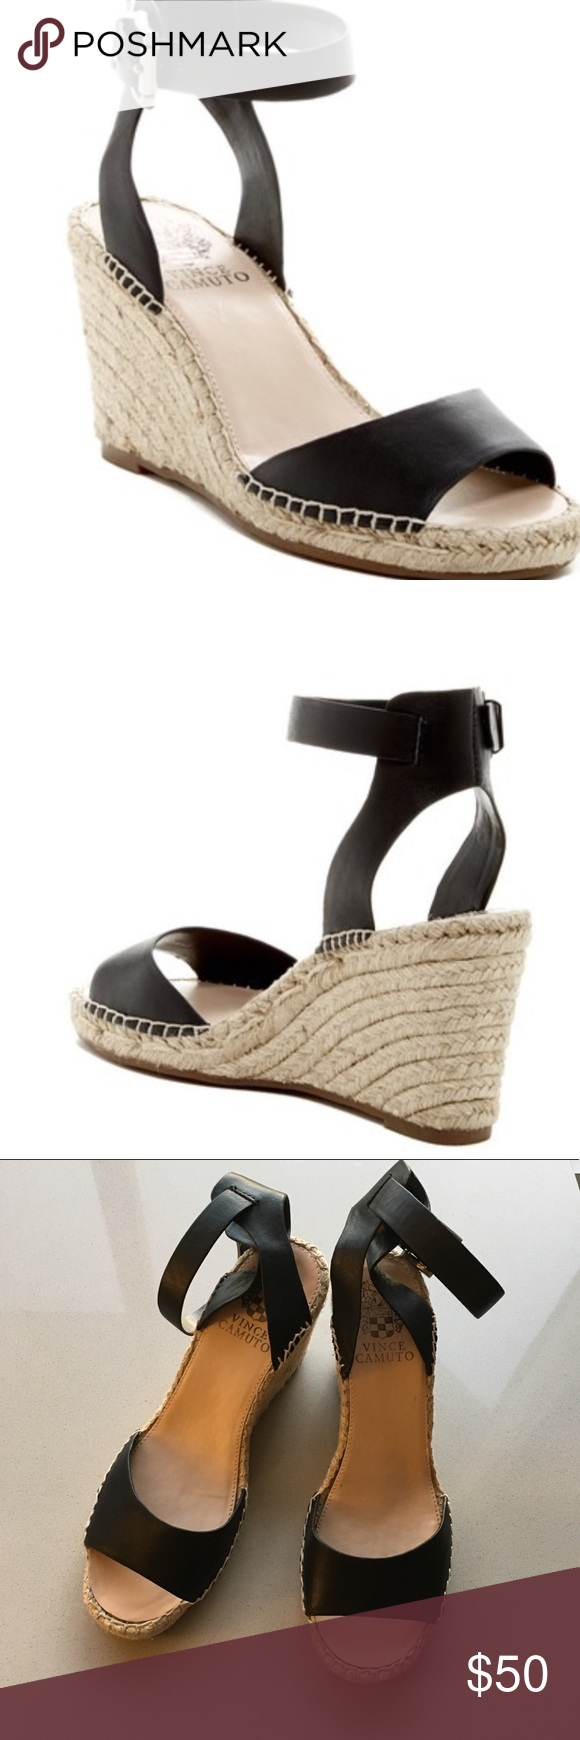 31773033e6b Vince Camuto Tagger Espadrille Wedge Sandal Open toe - Ankle buckle strap  closure - Lined footbed - Espadrille wedge heel - Approx.